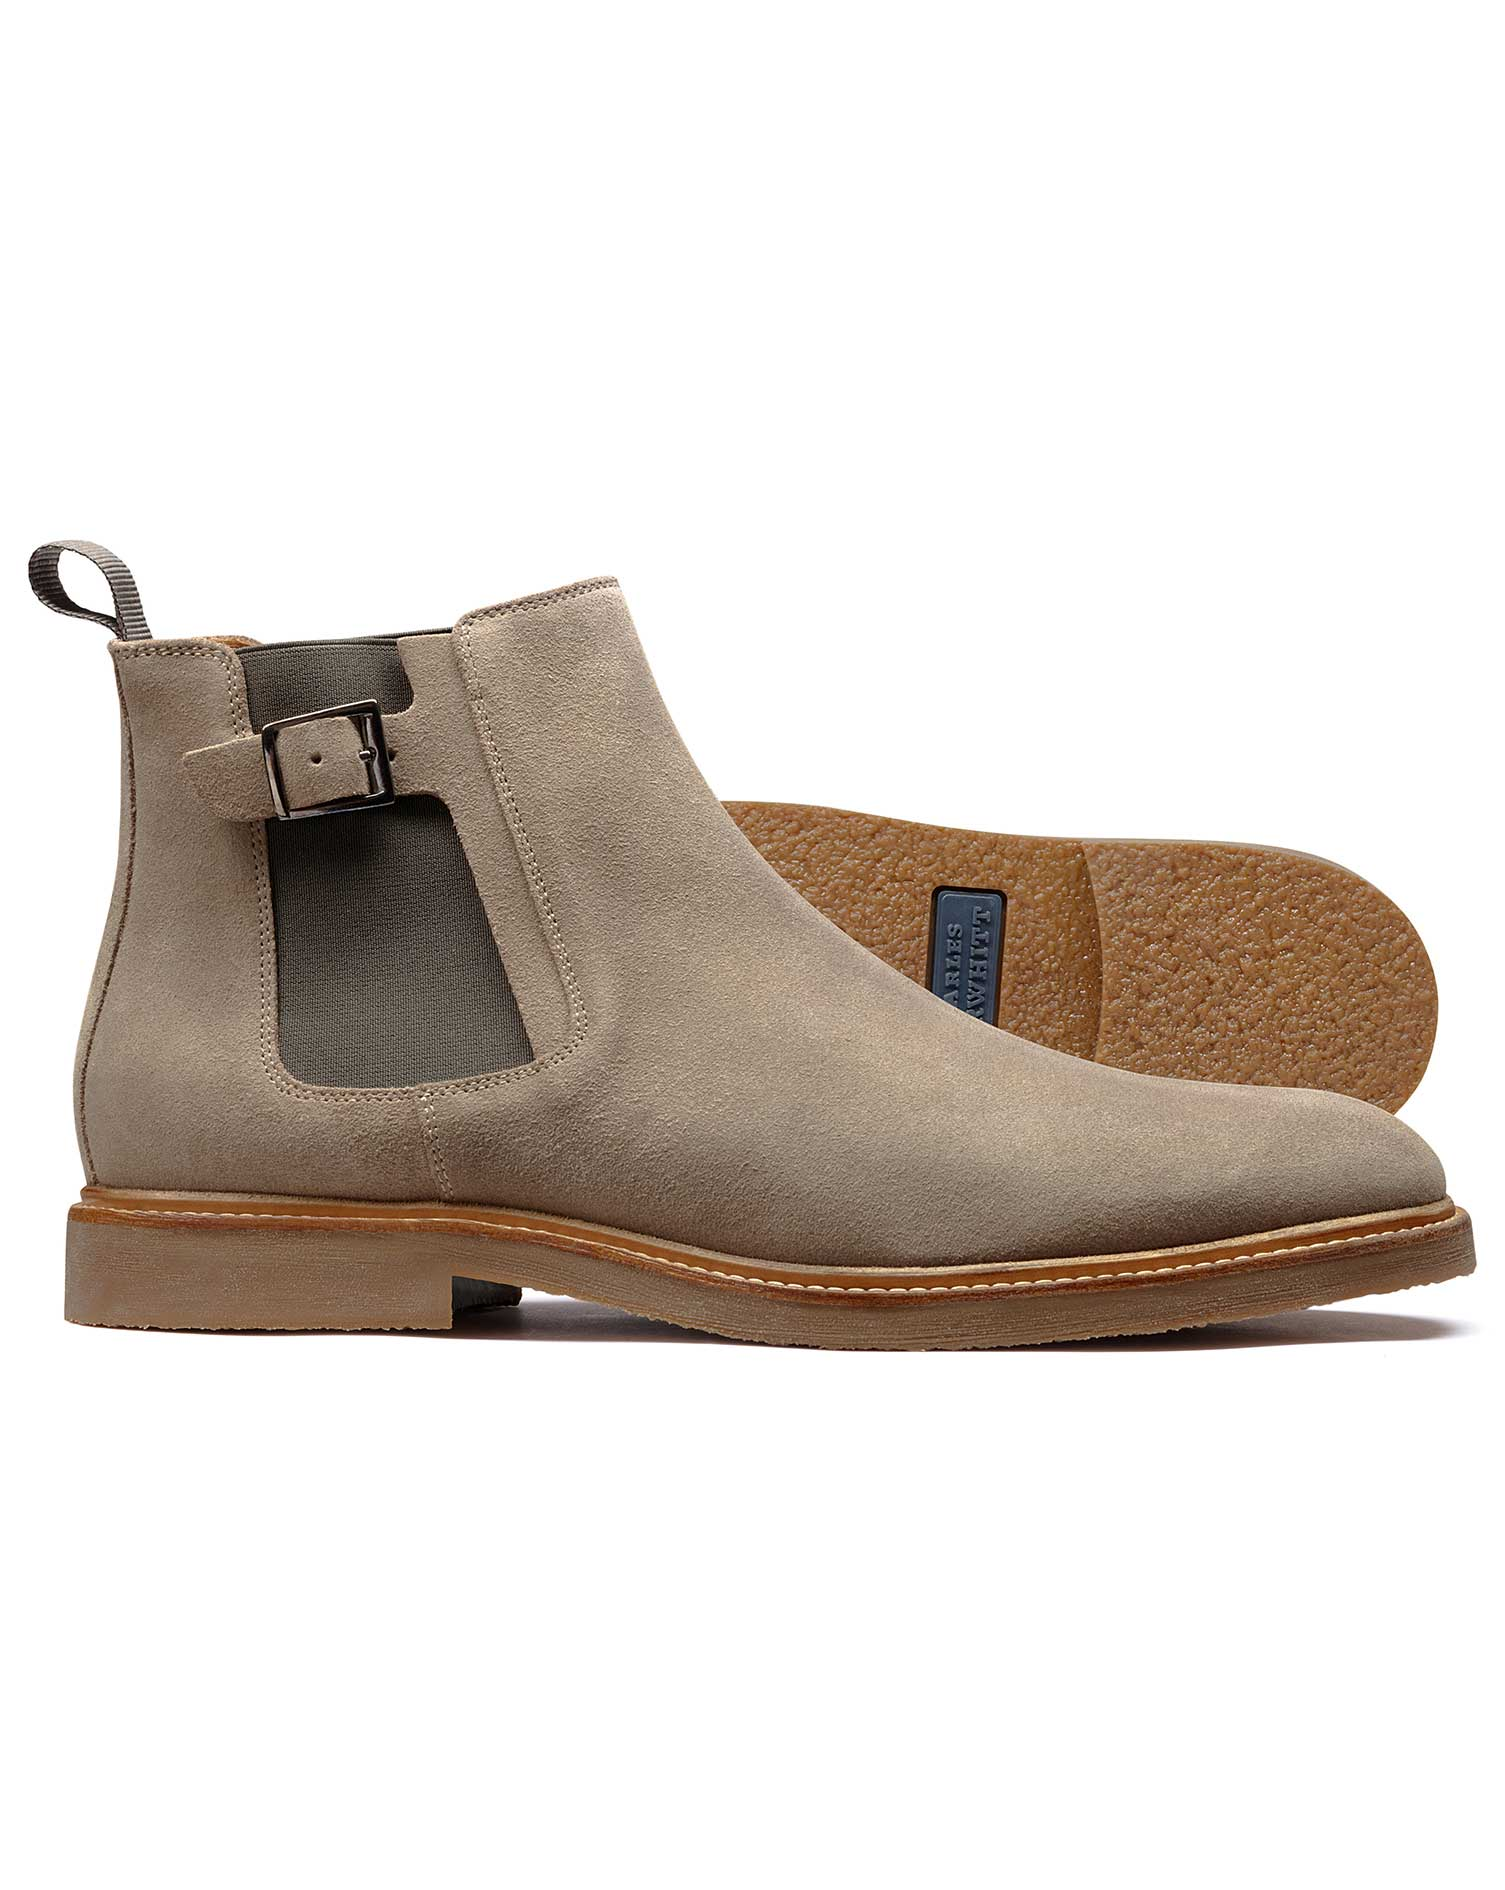 Stone Chelsea Boot Size 9 R by Charles Tyrwhitt